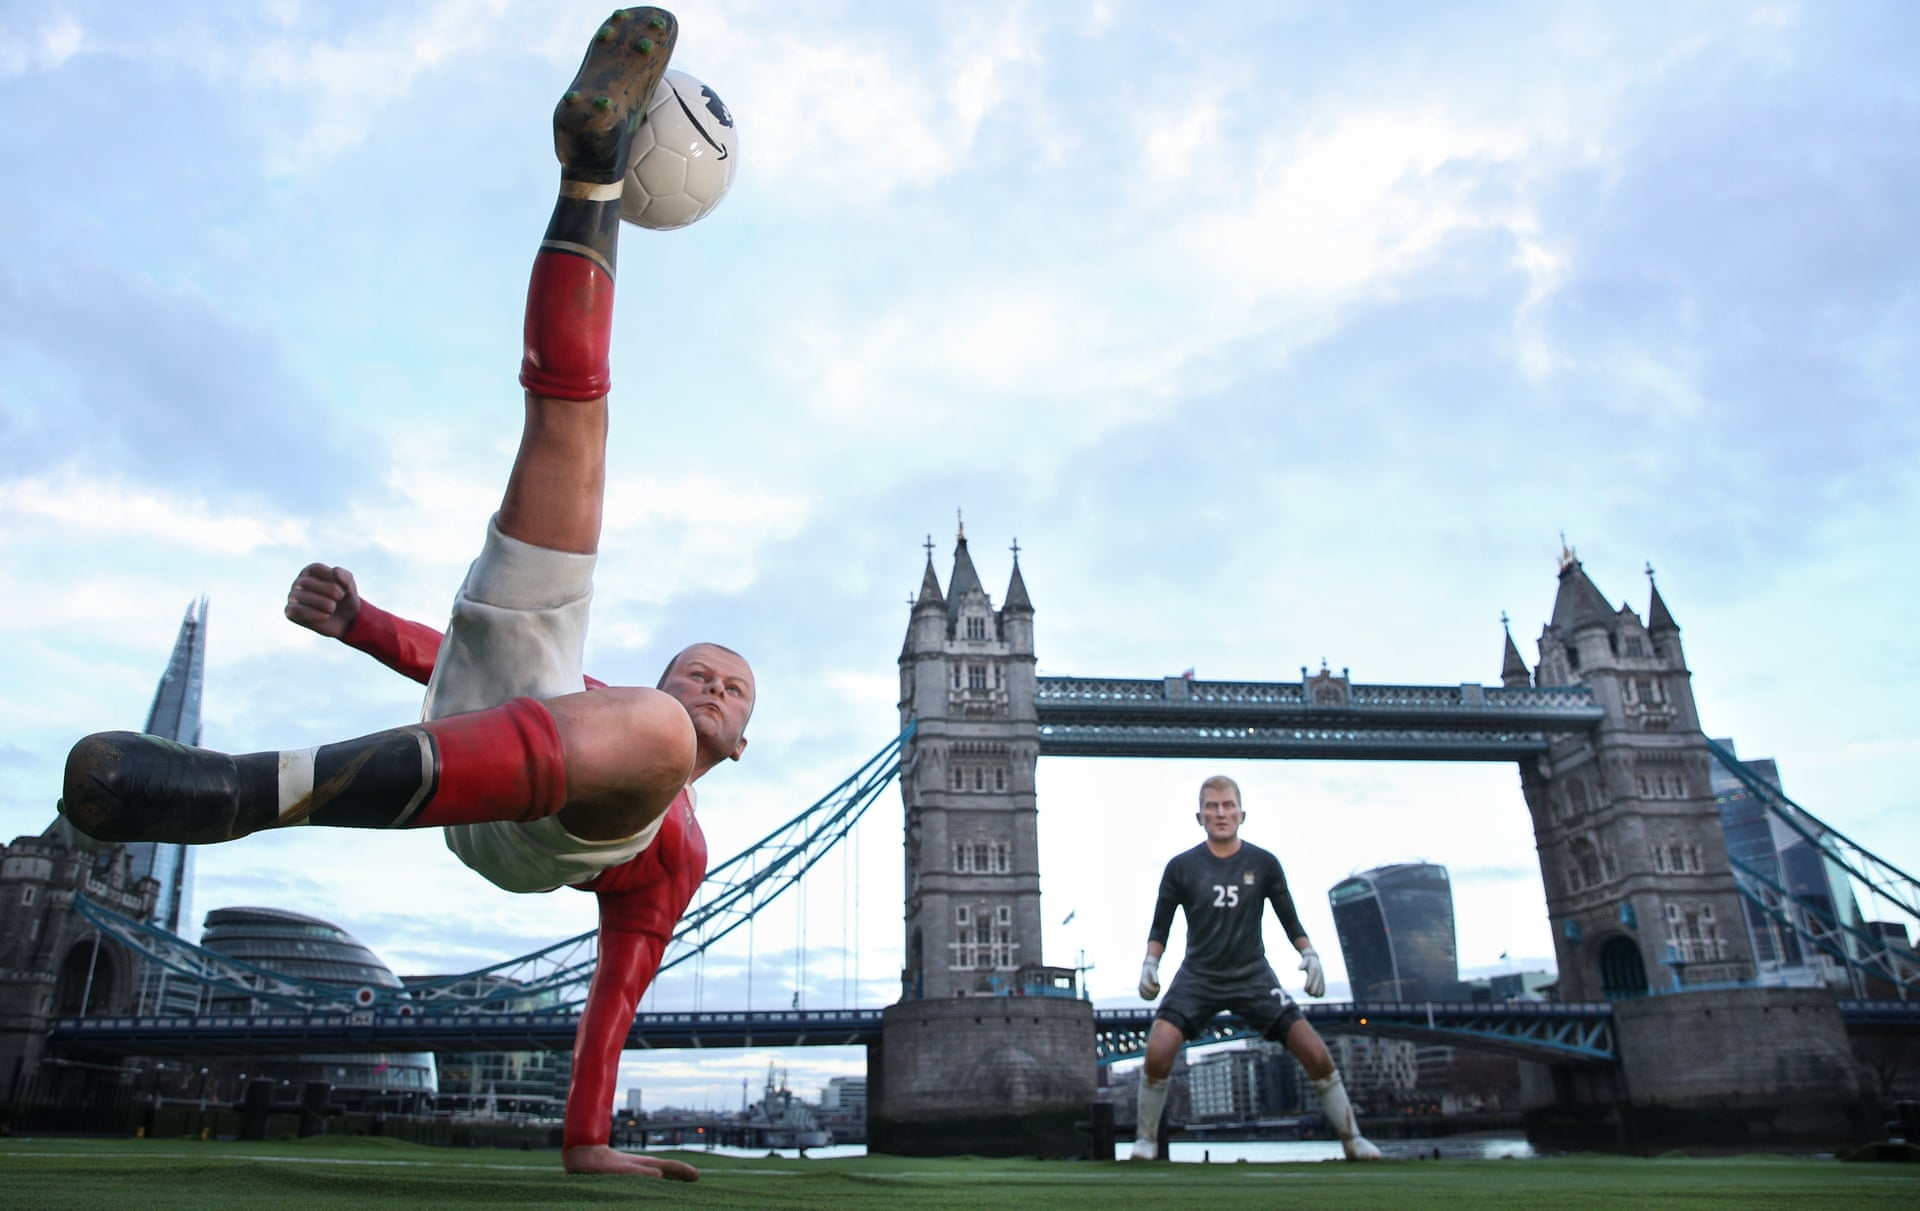 Wayne Rooney's bicycle kick against Manchester City is brought to life on the Thames, with Tower Bridge as the goal, at Amazon Prime's launch. Photograph: PinPep/Rex